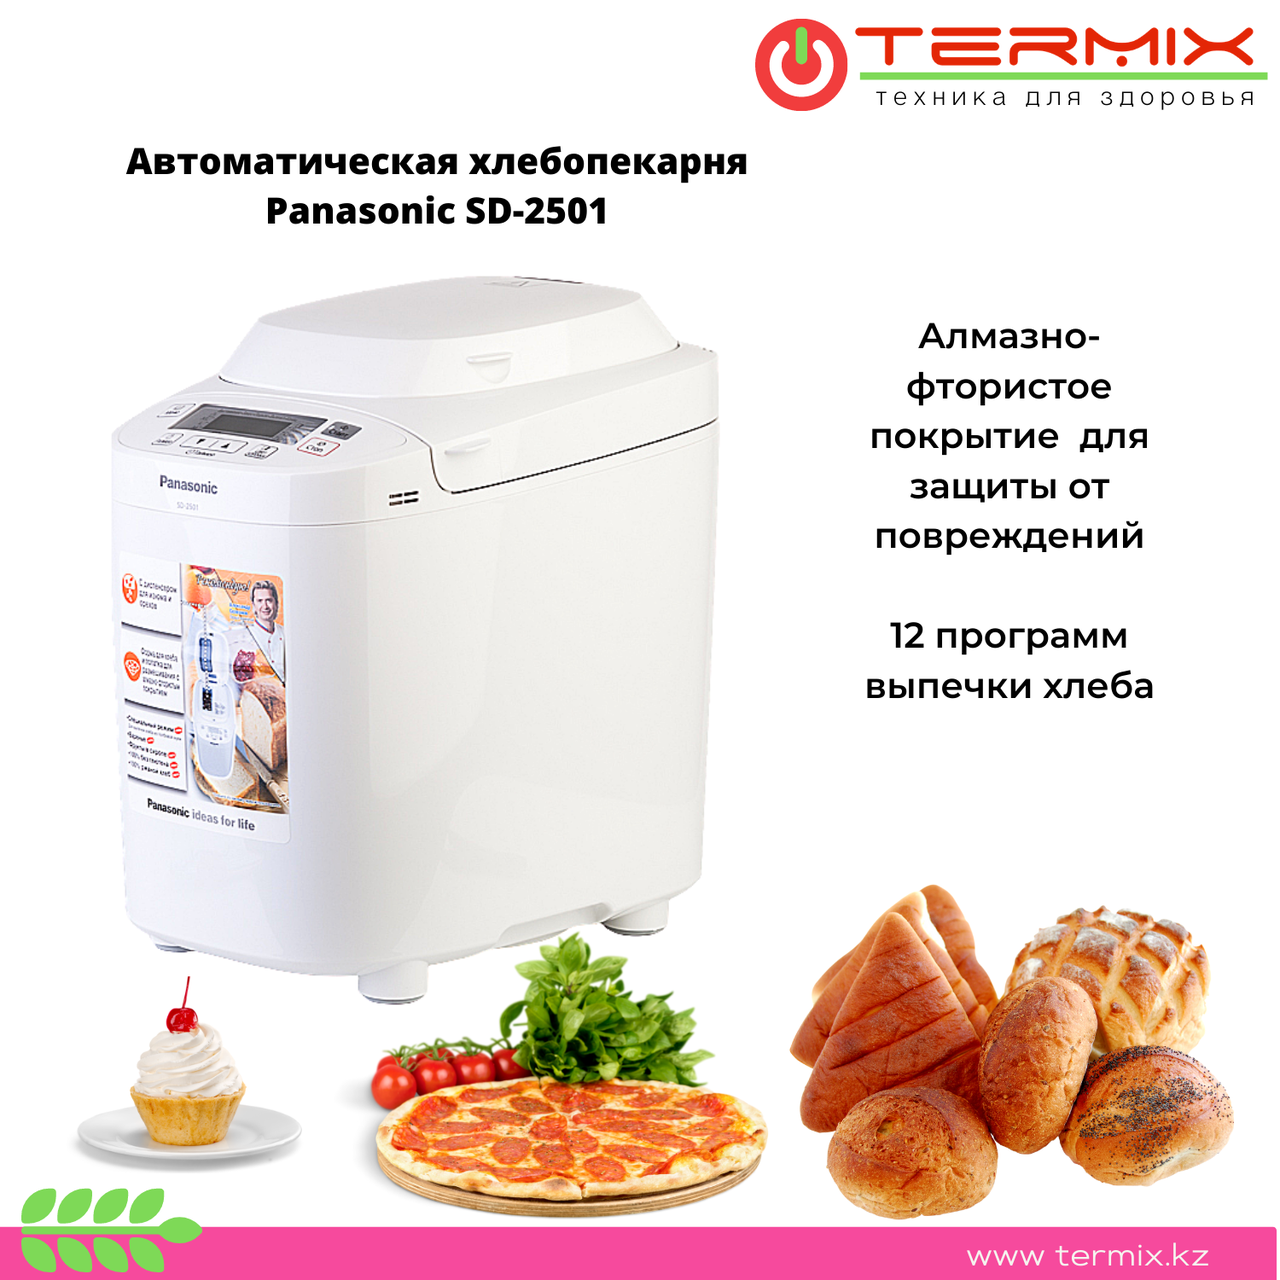 Автоматическая хлебопекарня Panasonic SD-2501